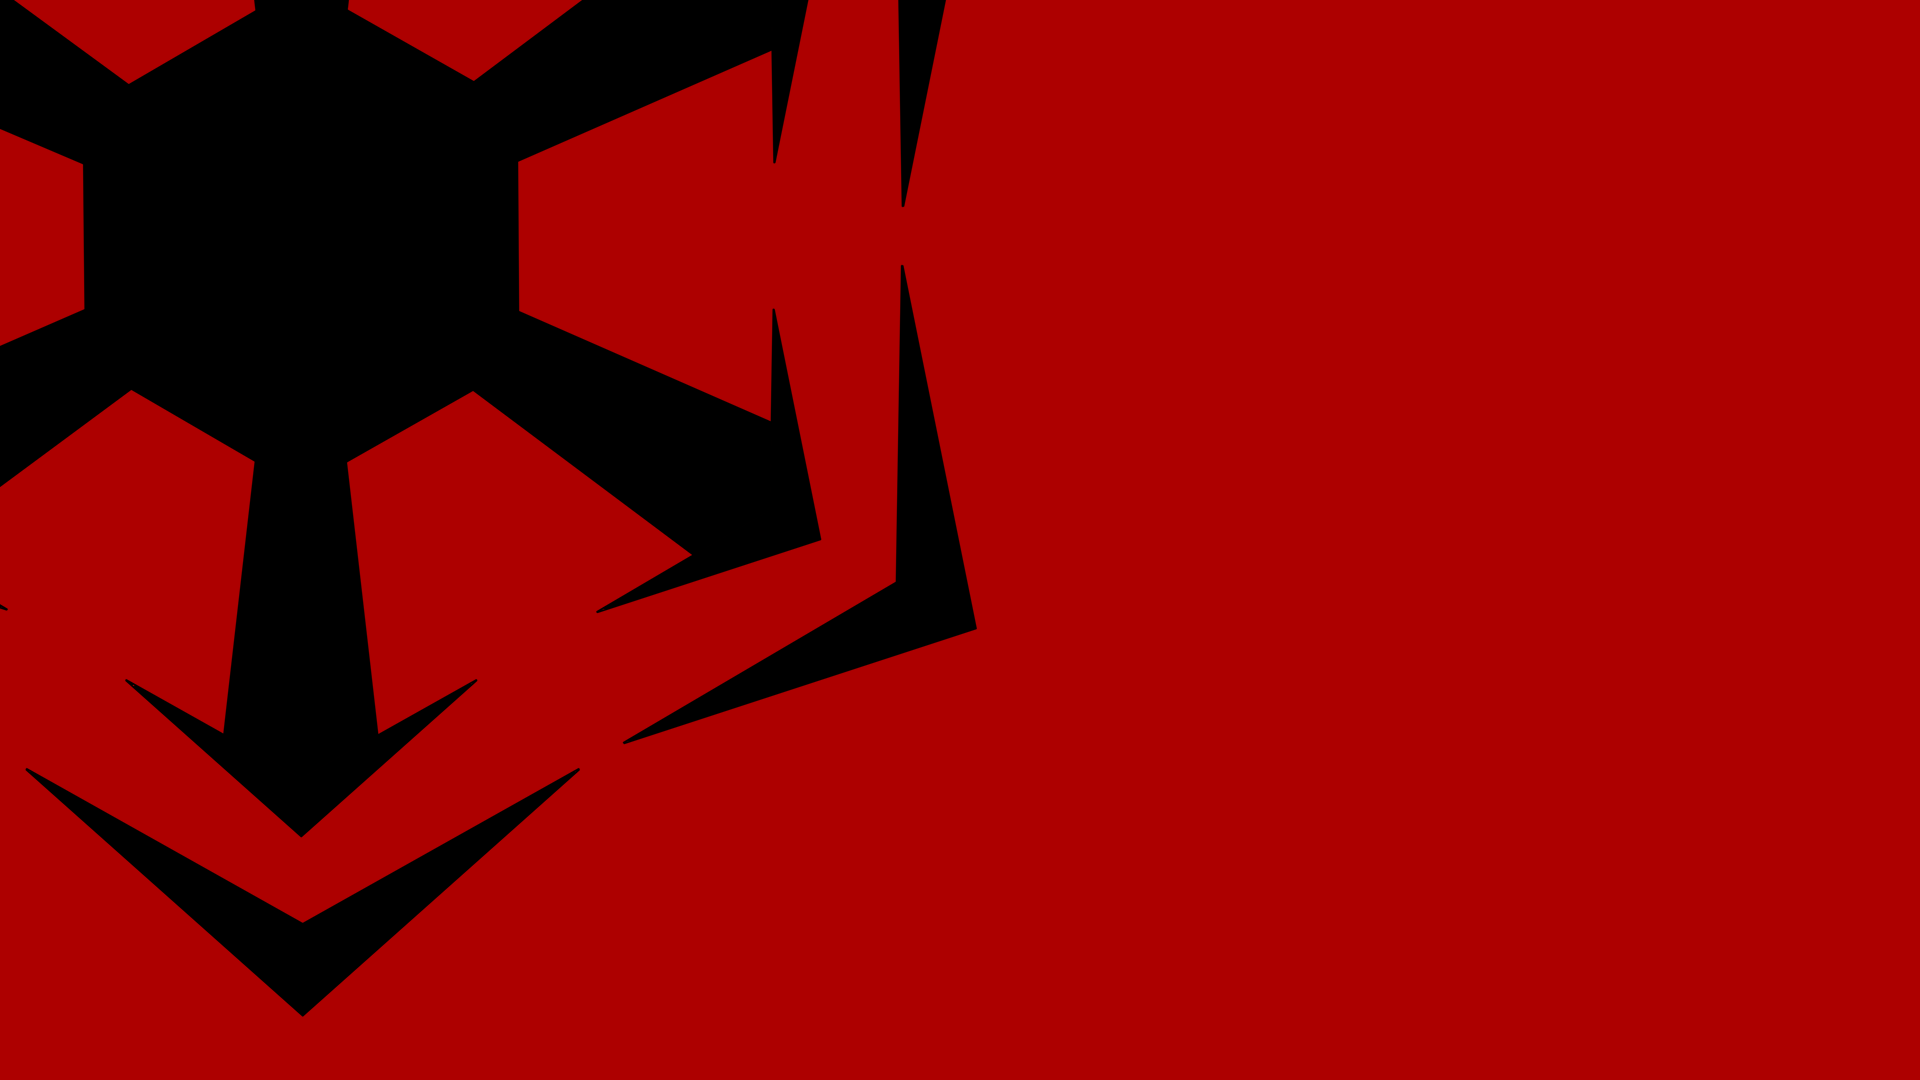 General 1920x1080 Sith Star Wars Star Wars: Knights of the Old Republic II: The Sith Lords Knights of the Old Republic Star Wars: Knights of the Old Republic